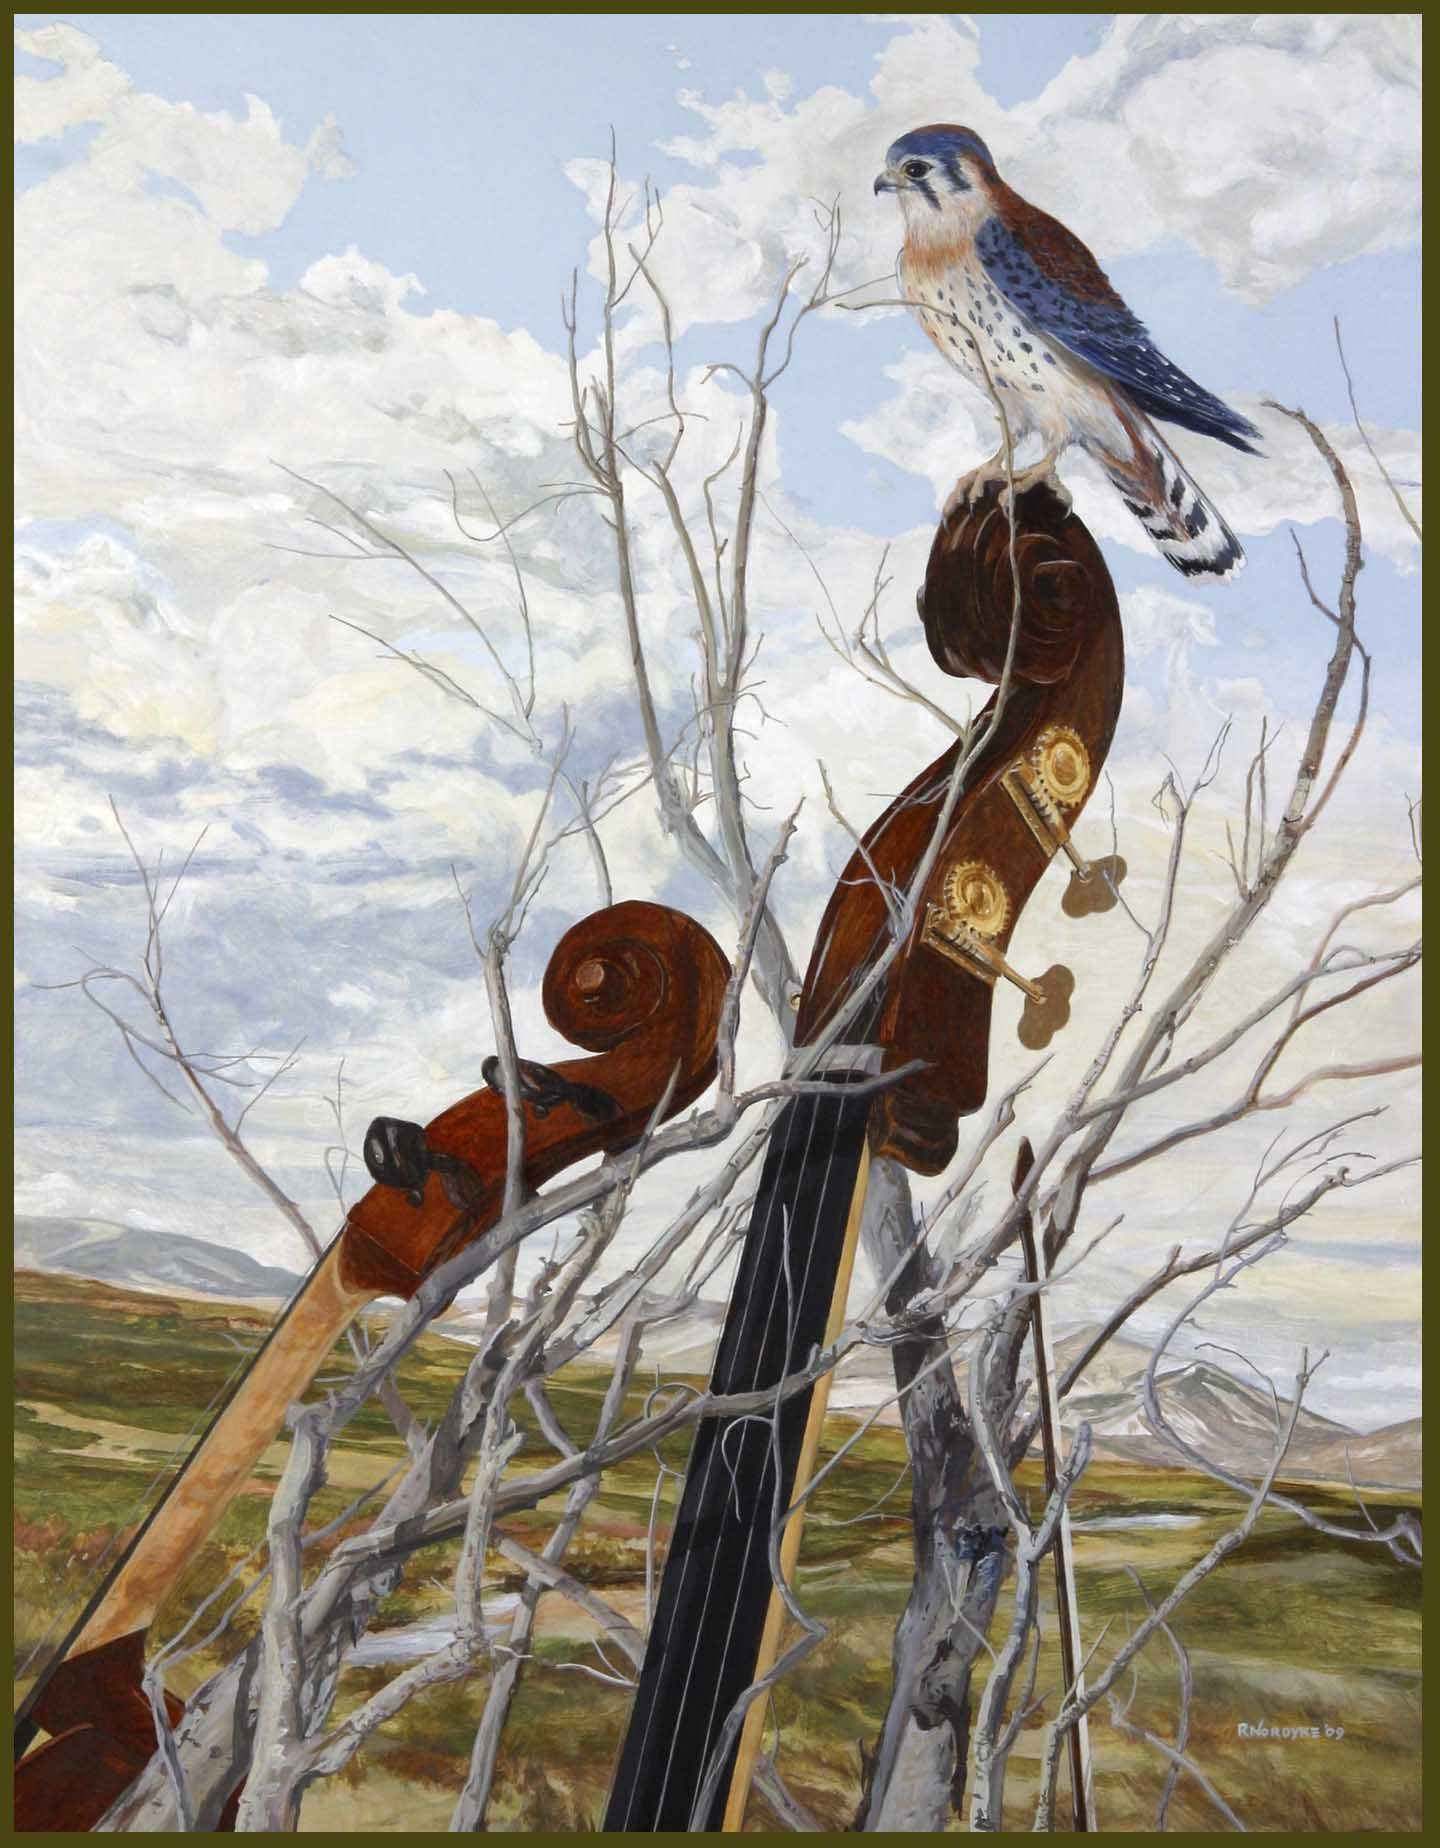 R. Nordyke painting Orchestral Con Brio I see kestrels on